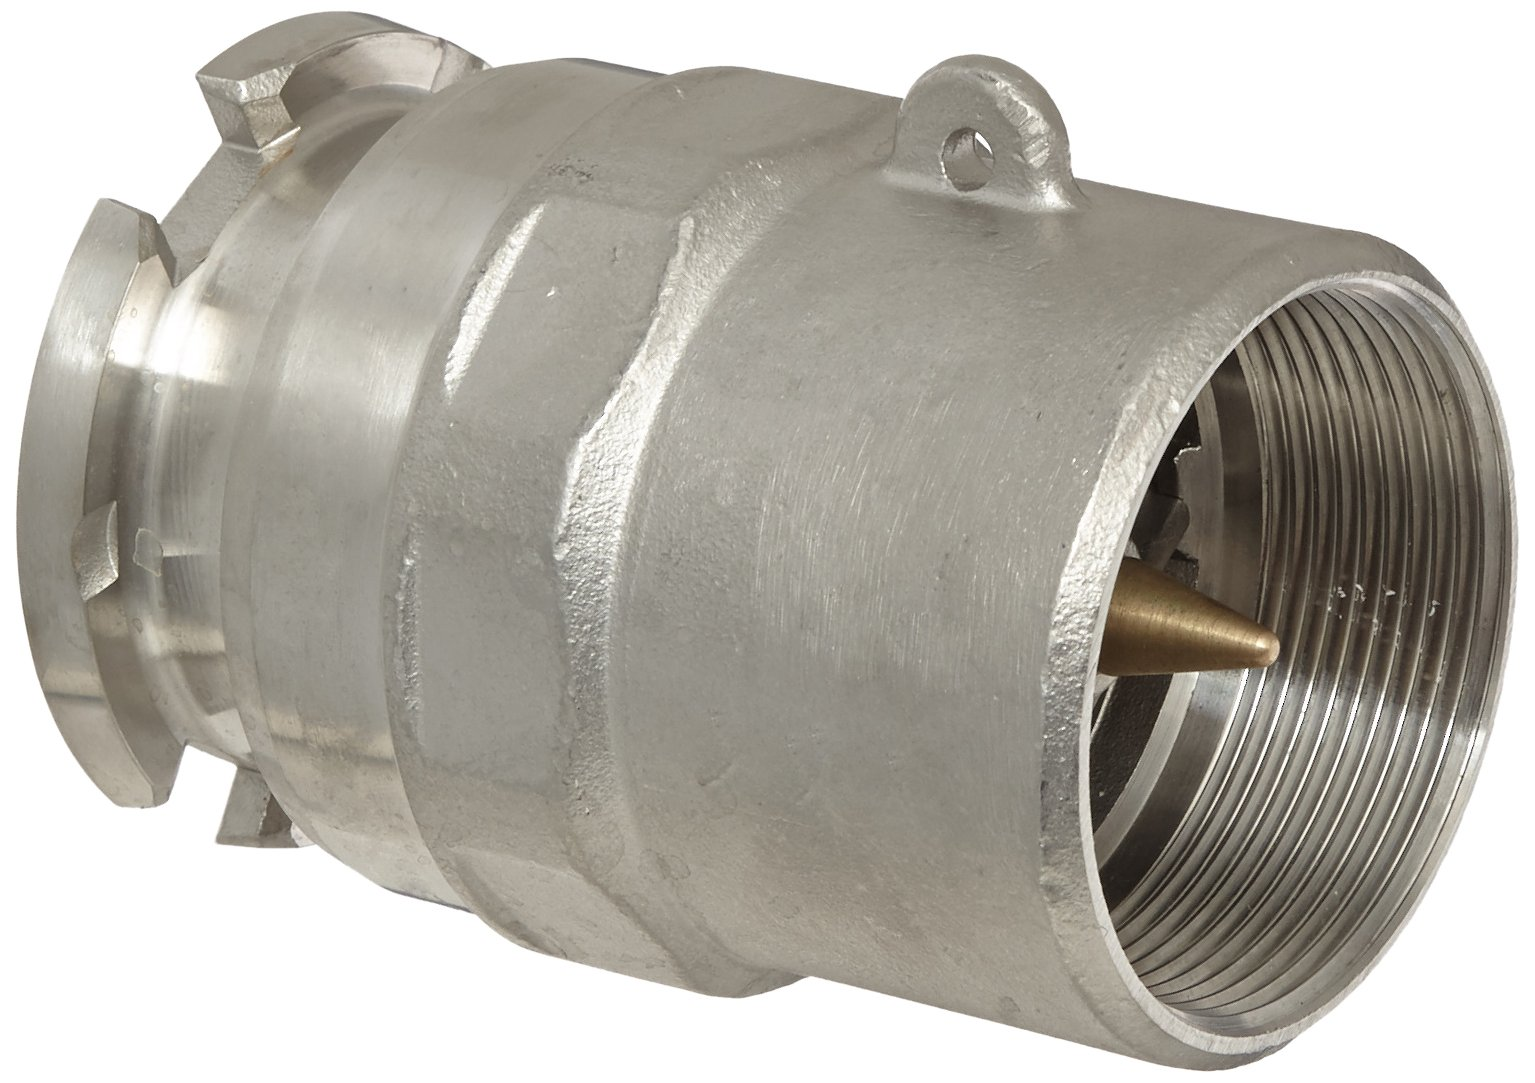 Dixon BA32-200 Stainless Steel Bayonet Style Dry Disconnect Tank Truck Fitting, Adapter with Viton Seal, 2'' Coupling x 2'' NPT Female